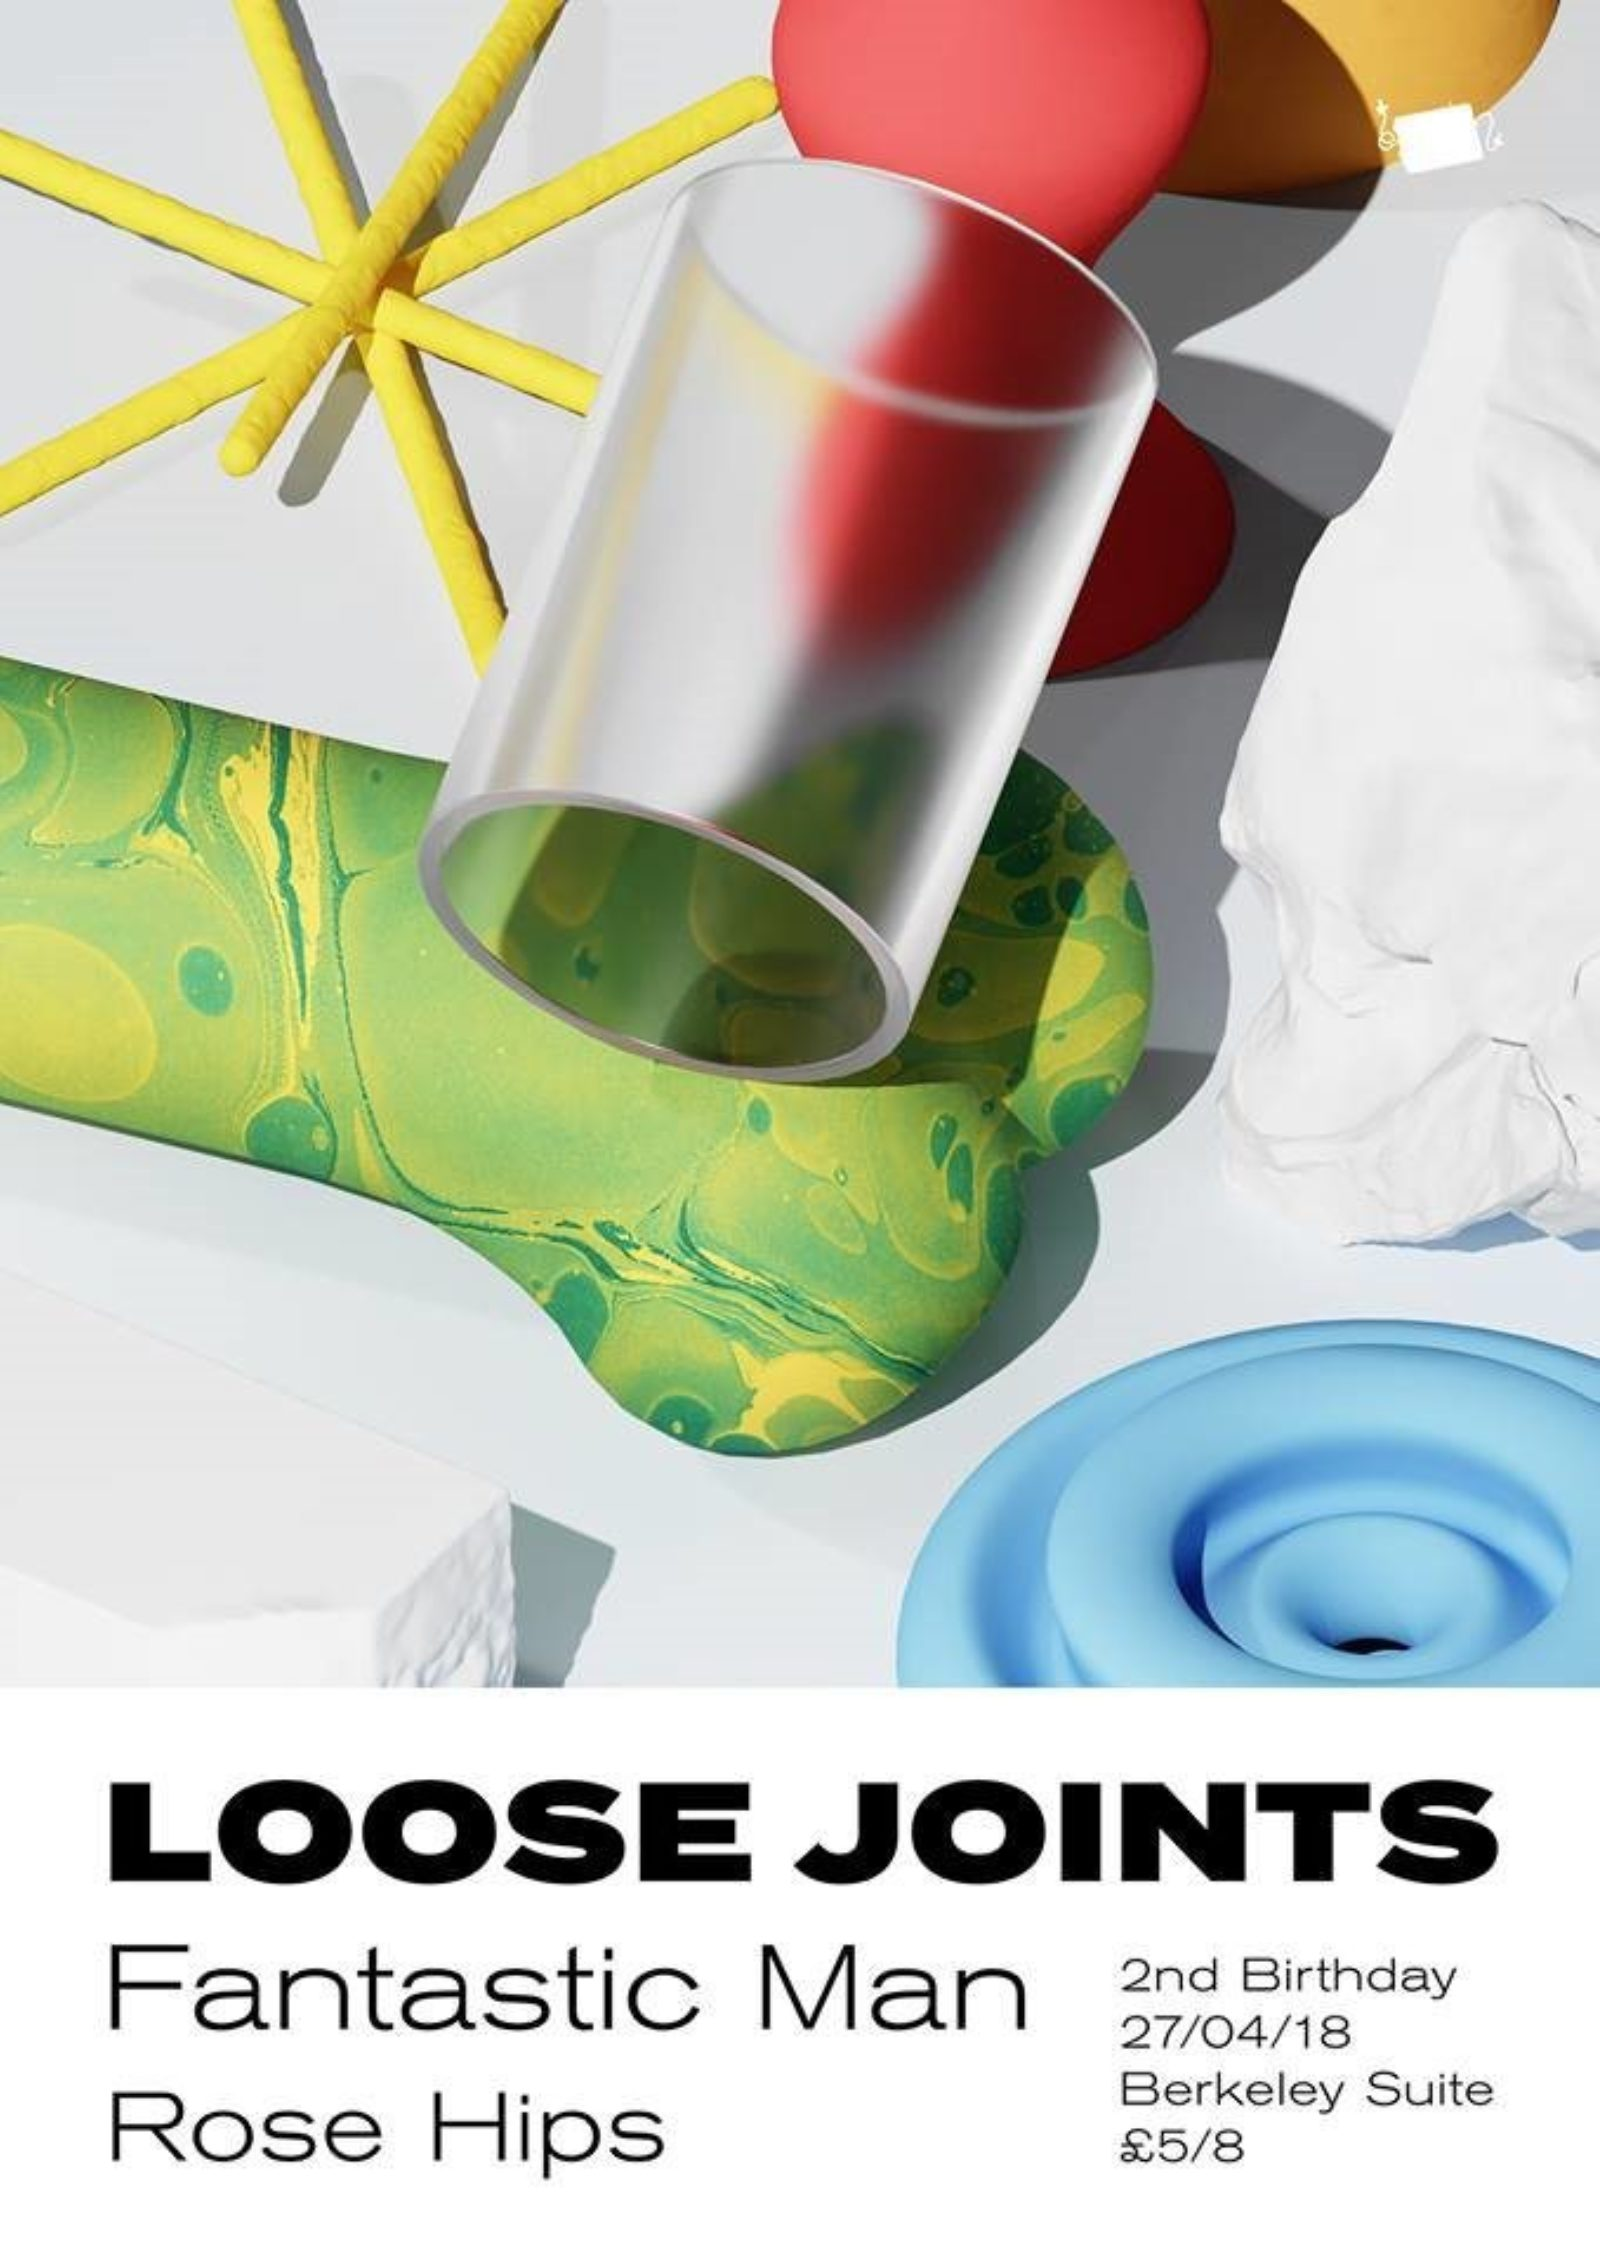 Loose Joints with Fantastic Man